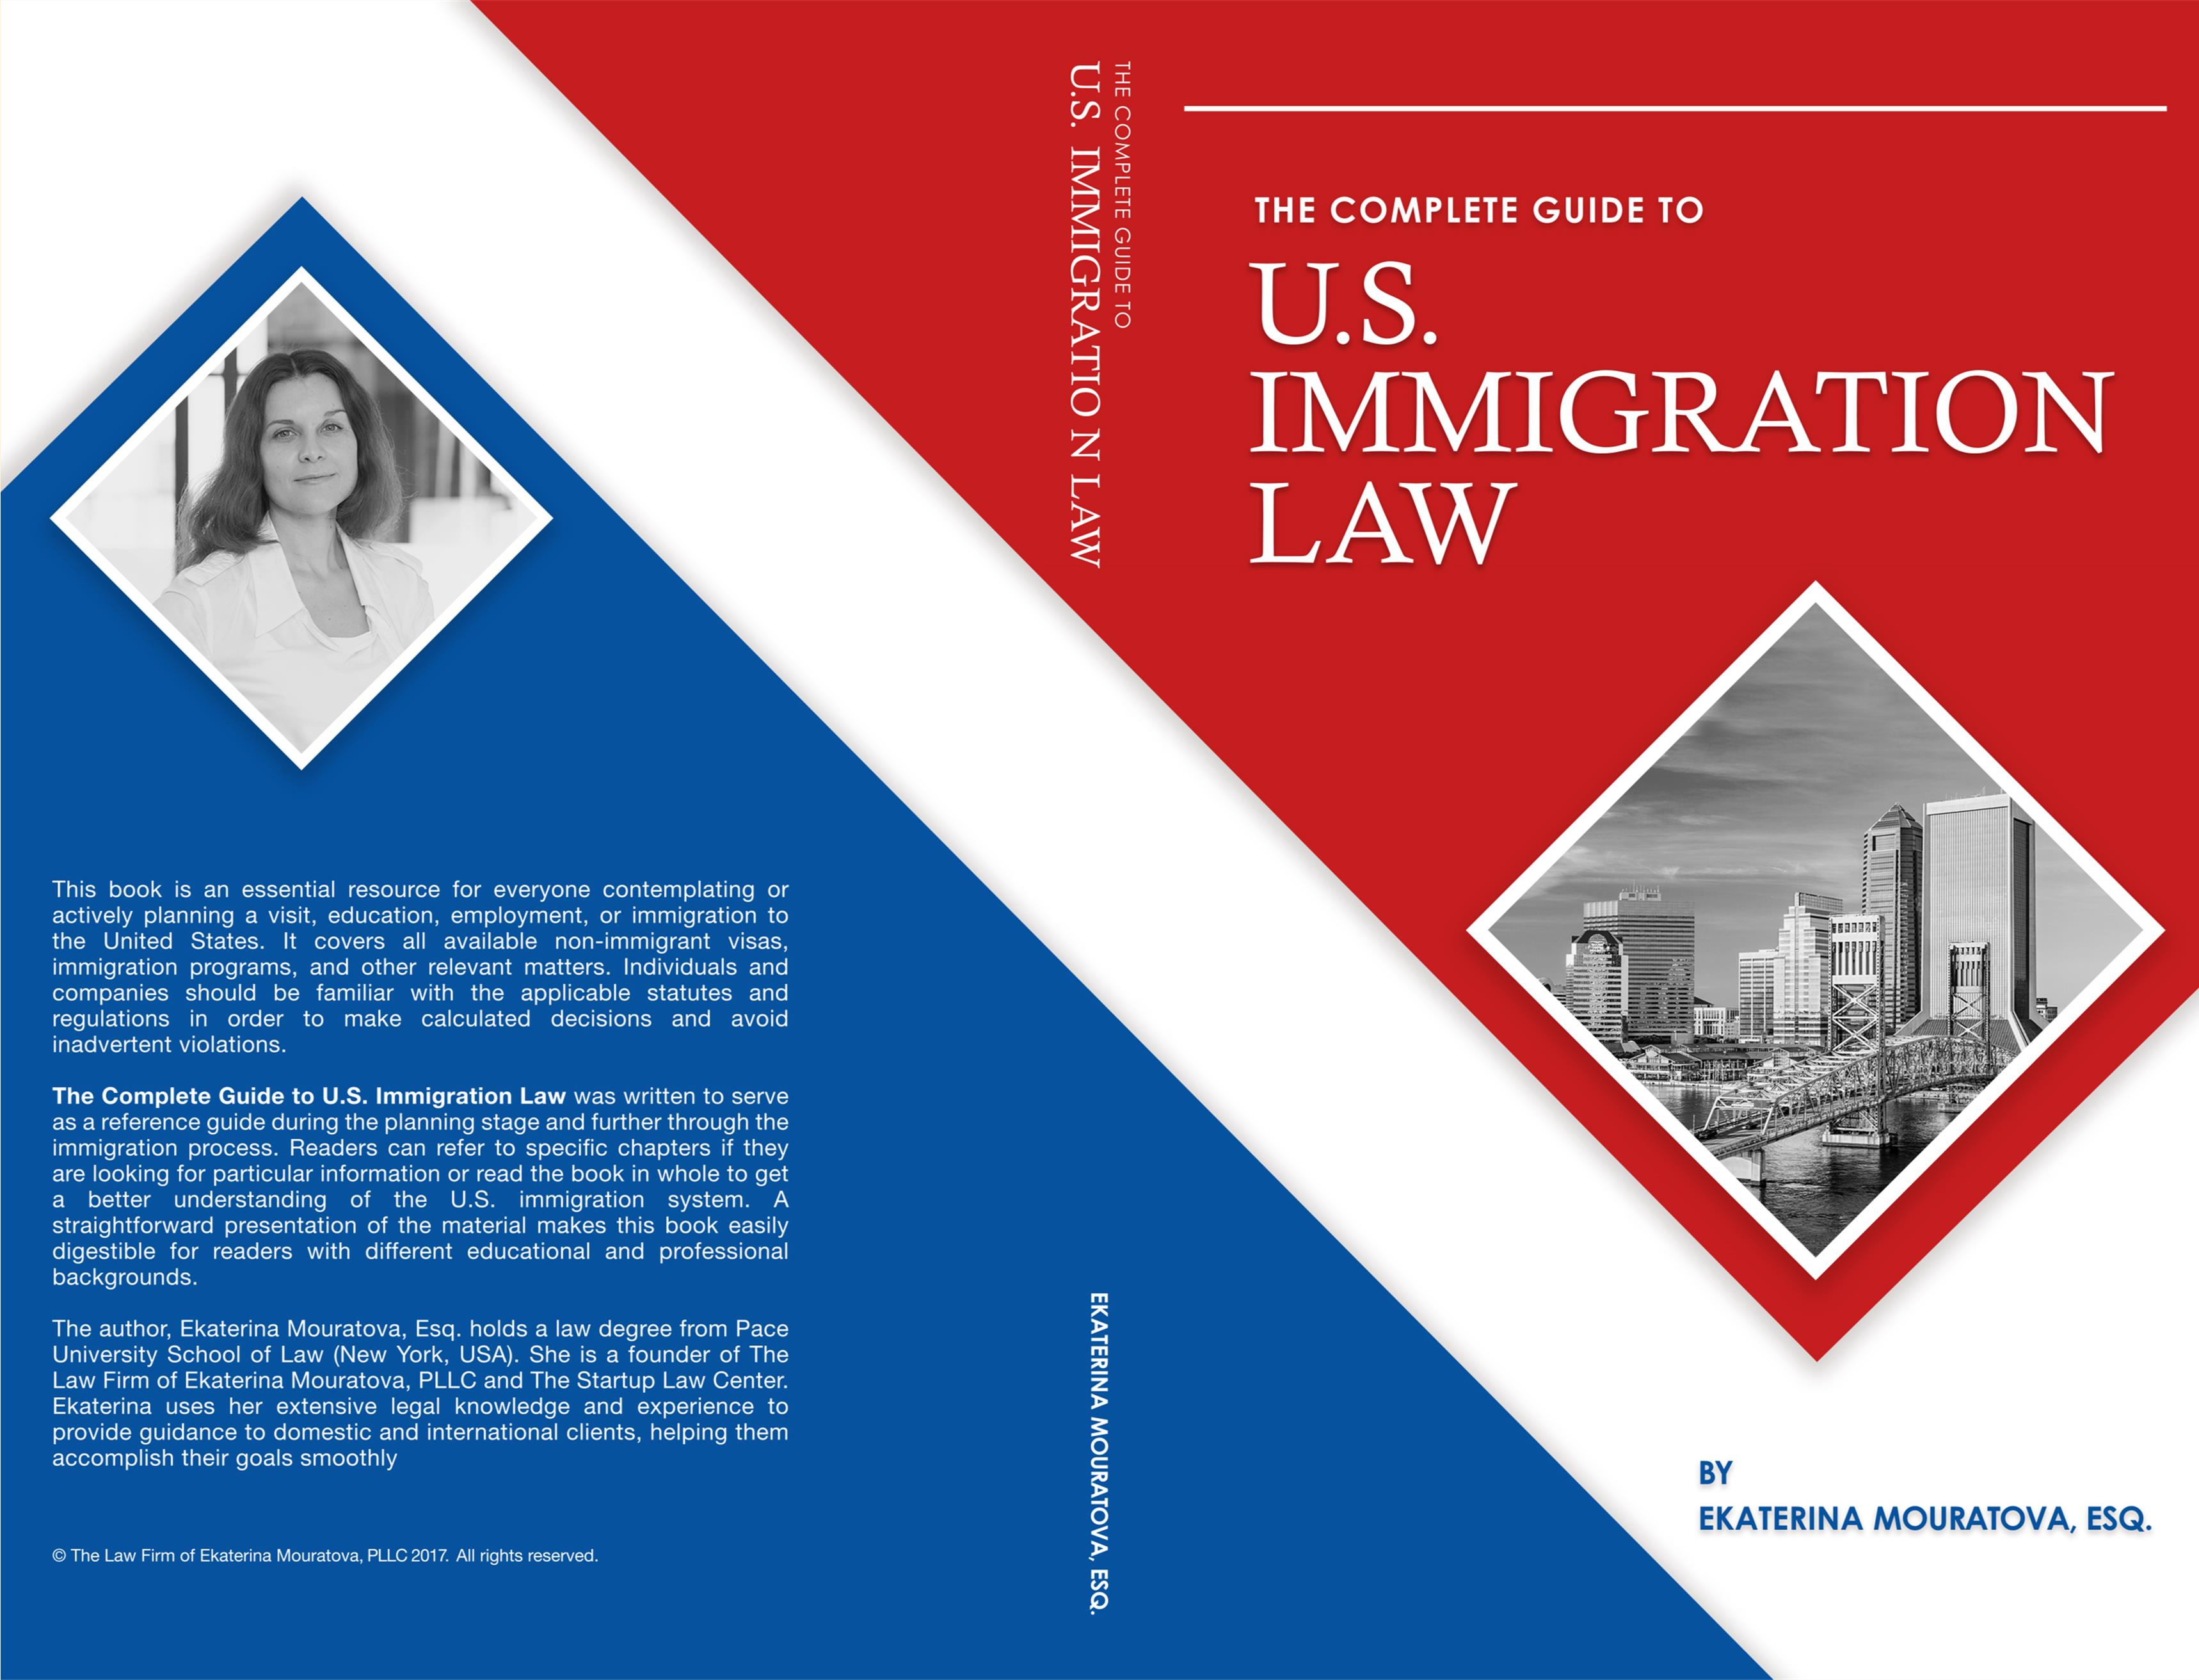 The Complete Guide to U.S. Immigration Law cover image